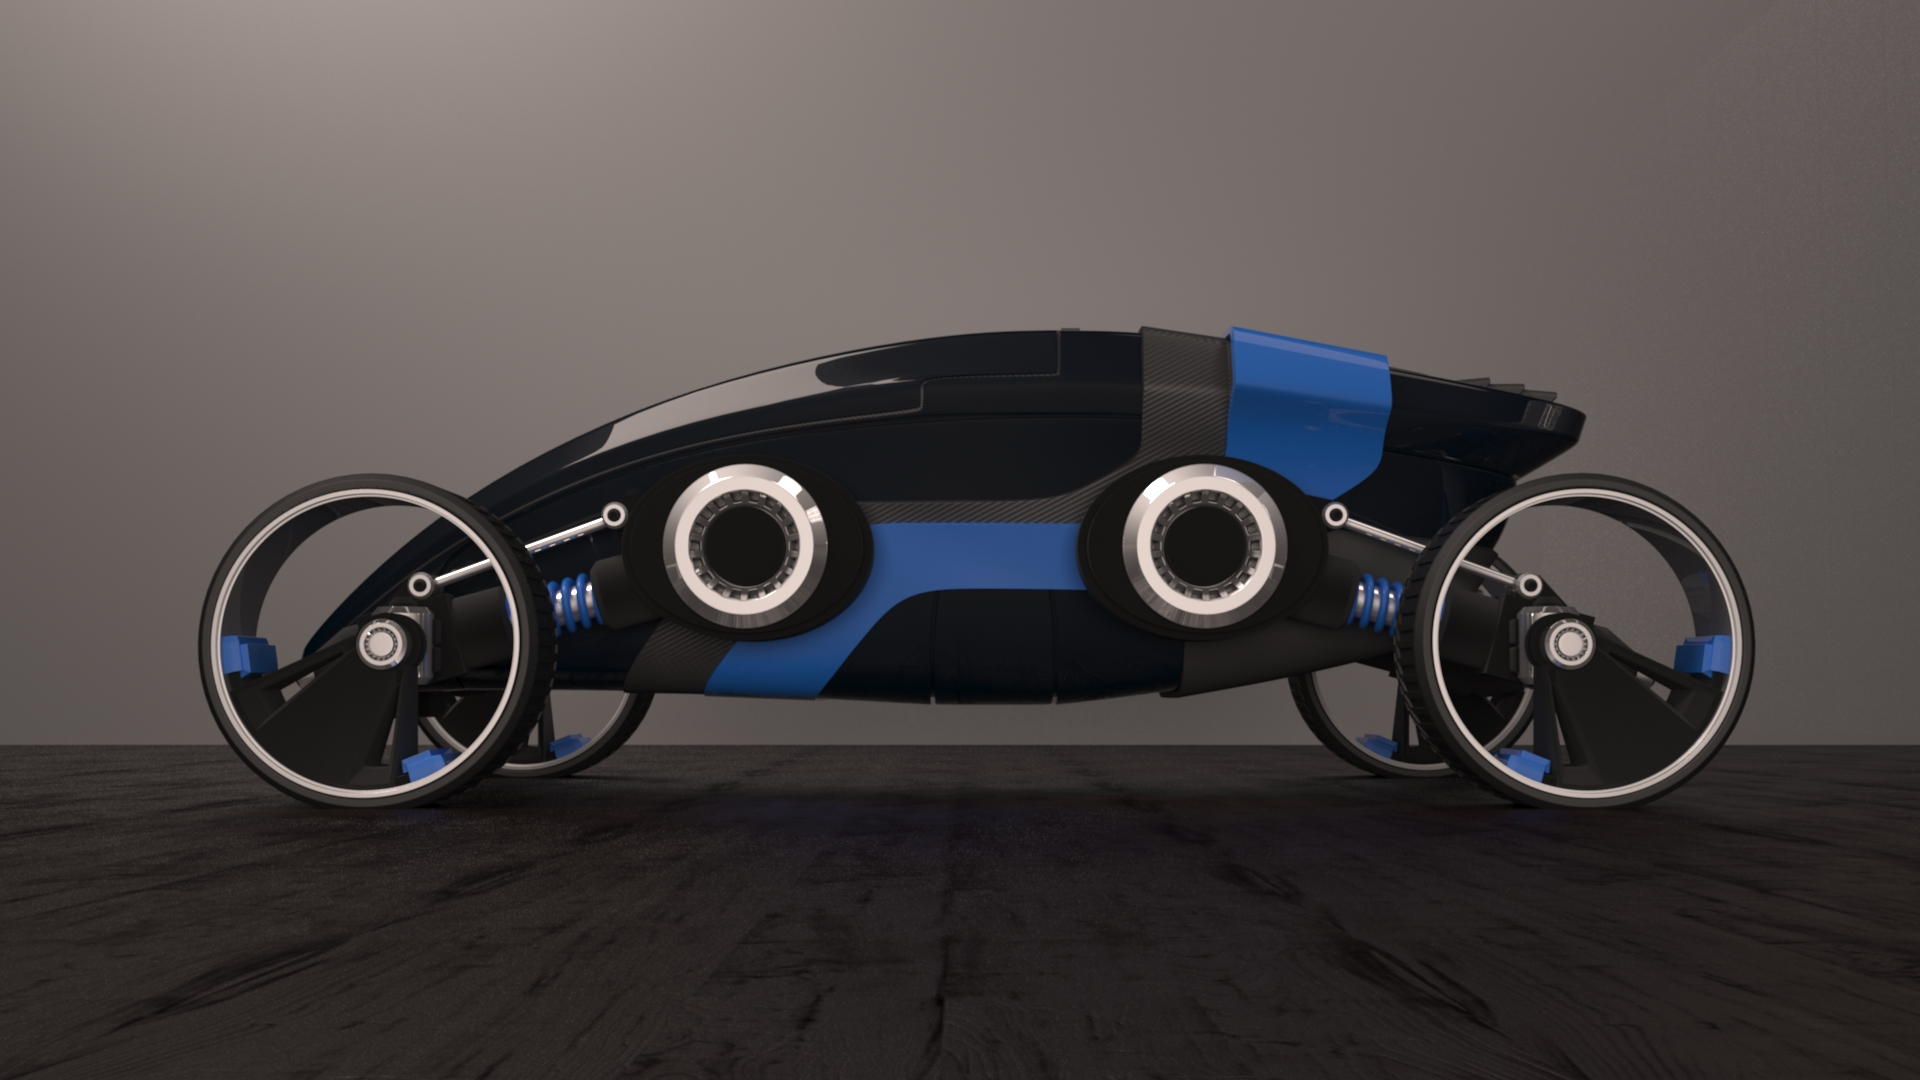 Futuristic car earlier render by curux